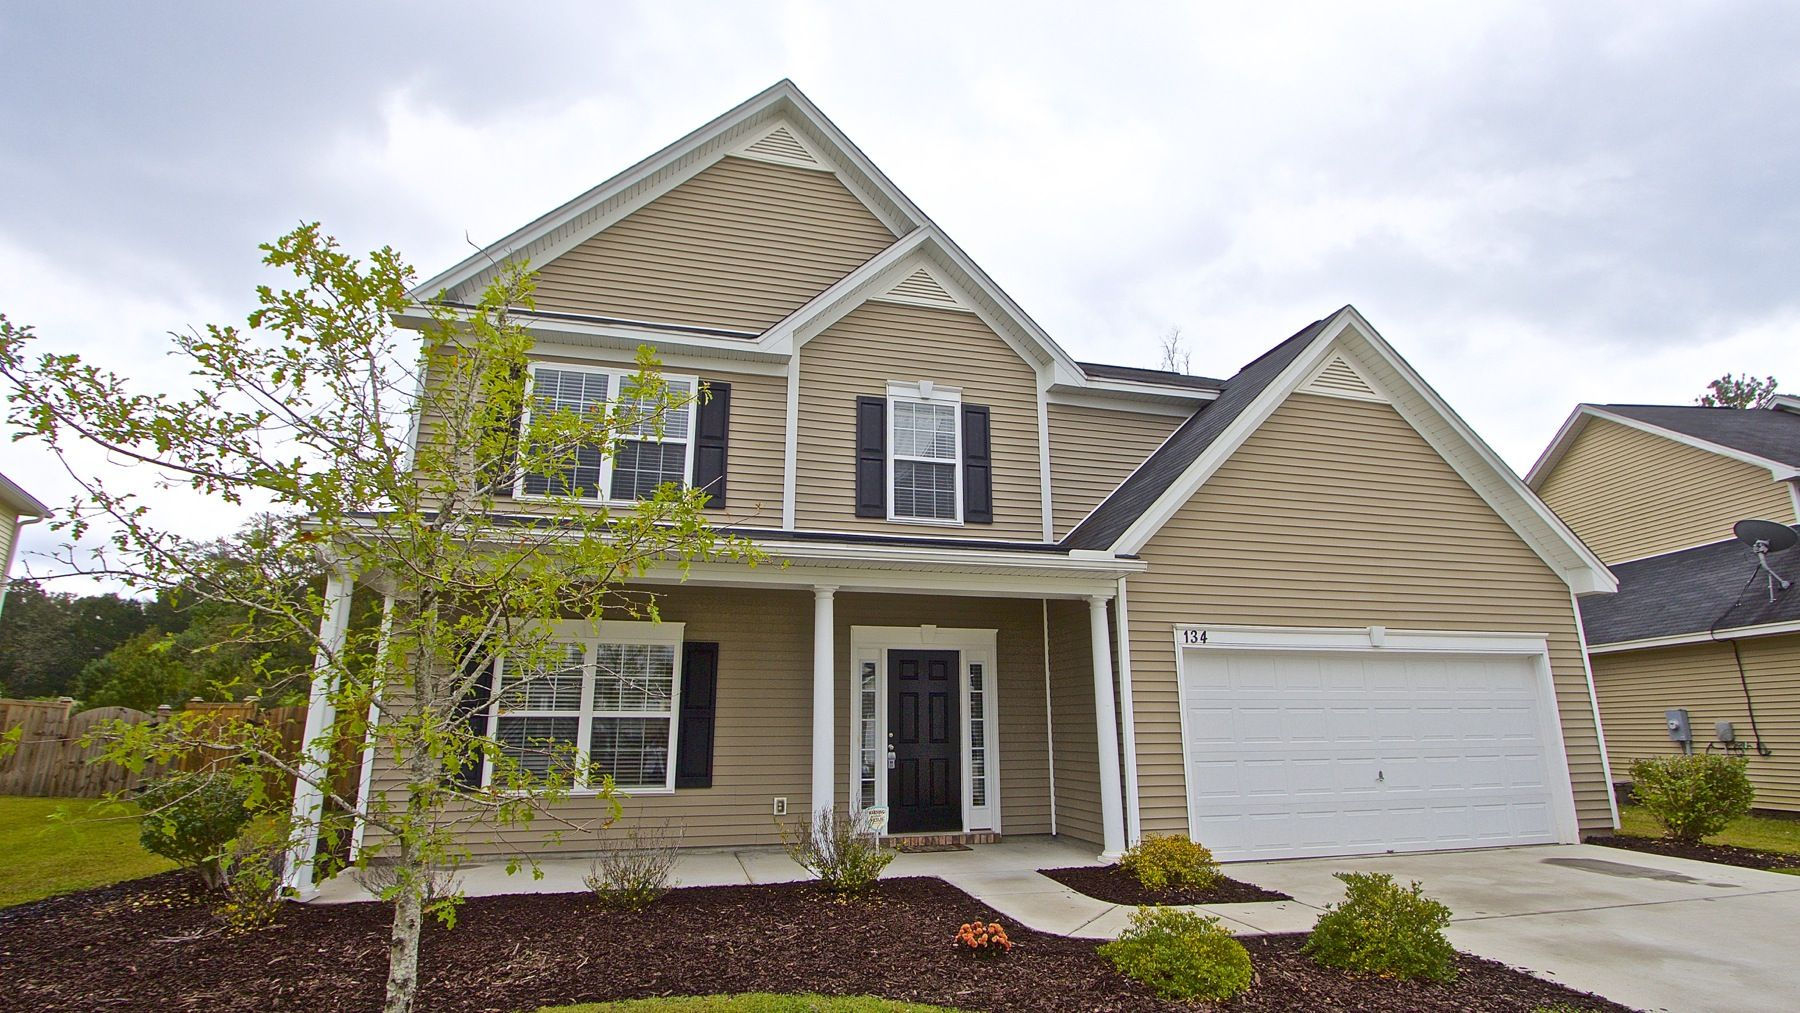 Sold large home in the country with five bedrooms and a